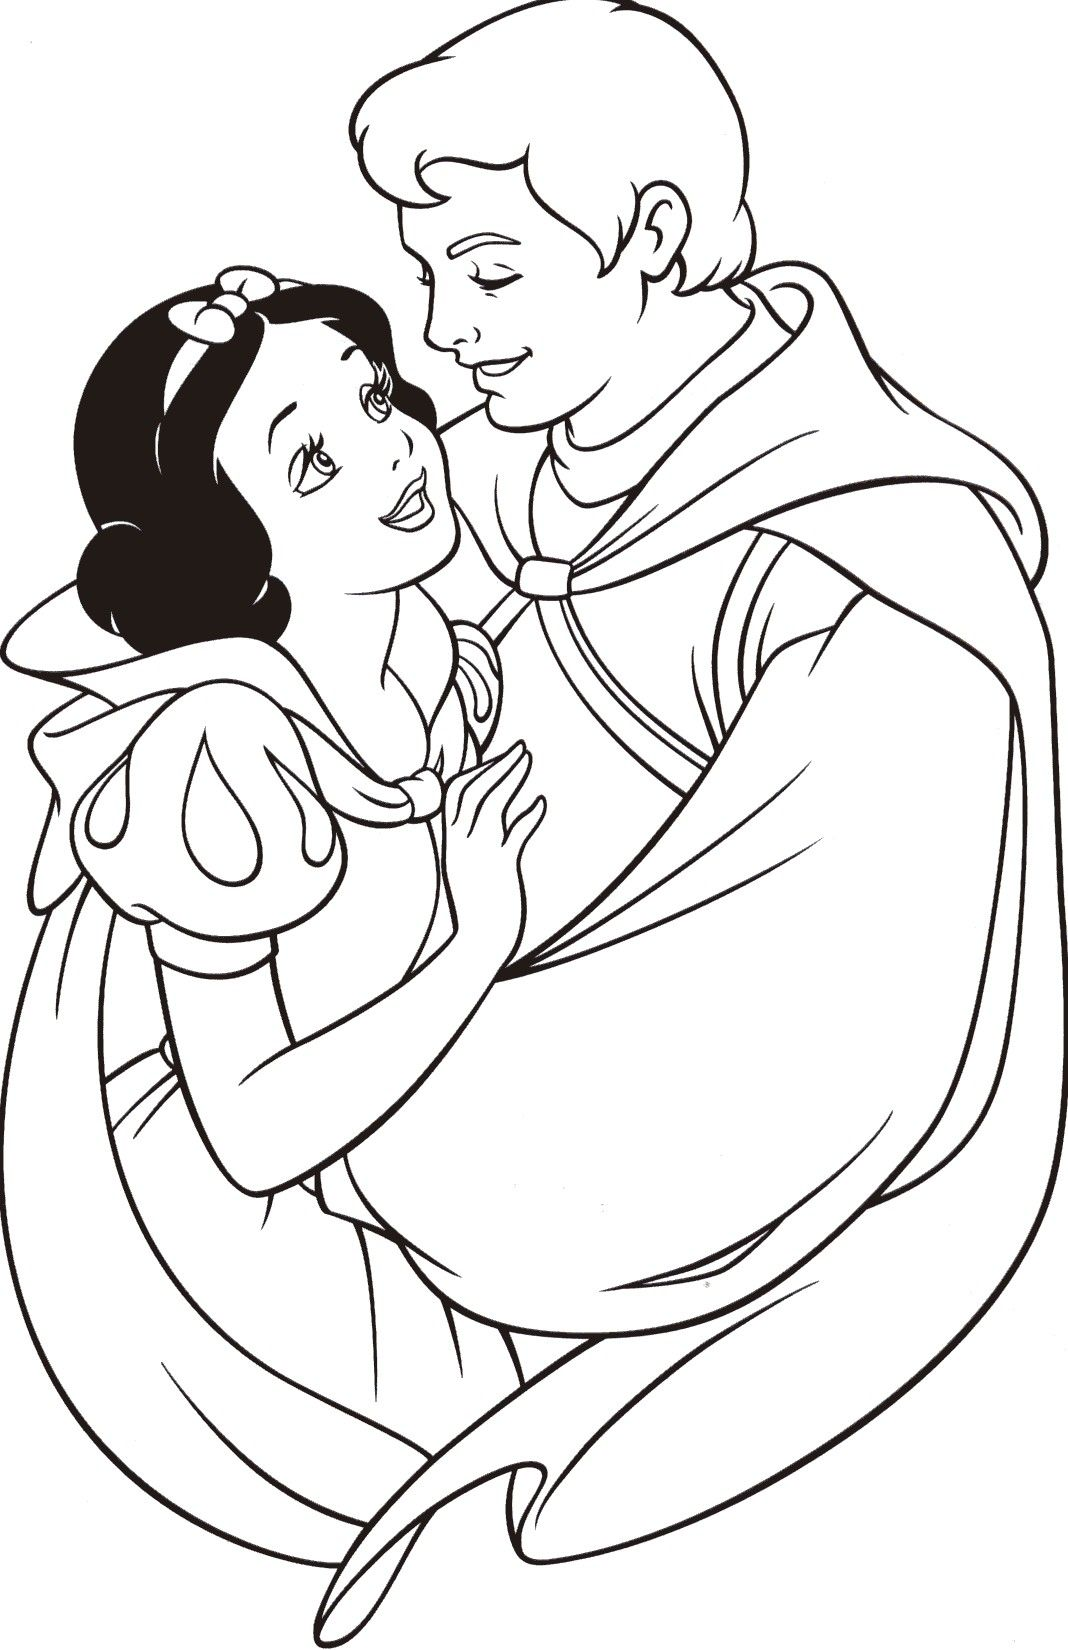 snow prince charming snow white coloring pagesdisney